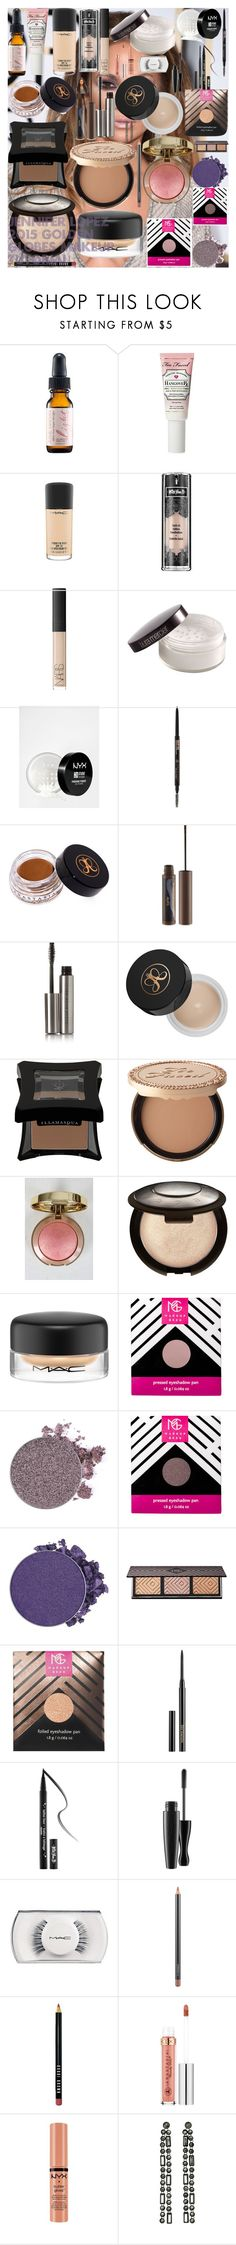 Jennifer Lopez 2015 Golden Globes Makeup Tutorial by oroartye-1 on Polyvore featuring beauty, Illamasqua, Becca, Hourglass Cosmetics, Kat Von D, Too Faced Cosmetics, Anastasia Beverly Hills, MAC Cosmetics, NARS Cosmetics and tarte